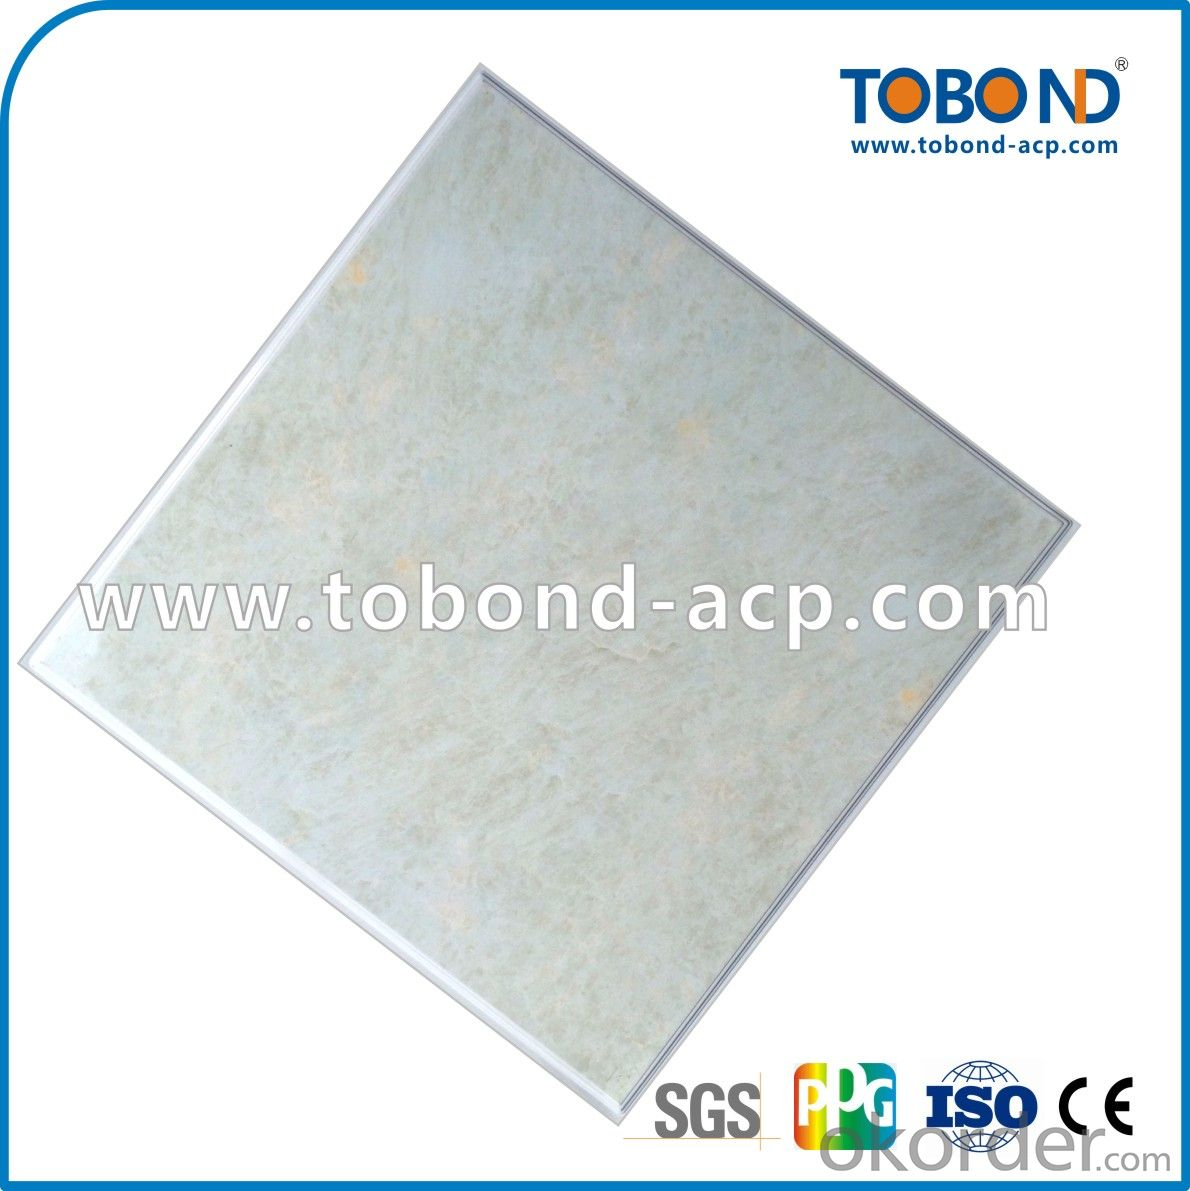 Ordinary power coating Project ceiling TOBOND